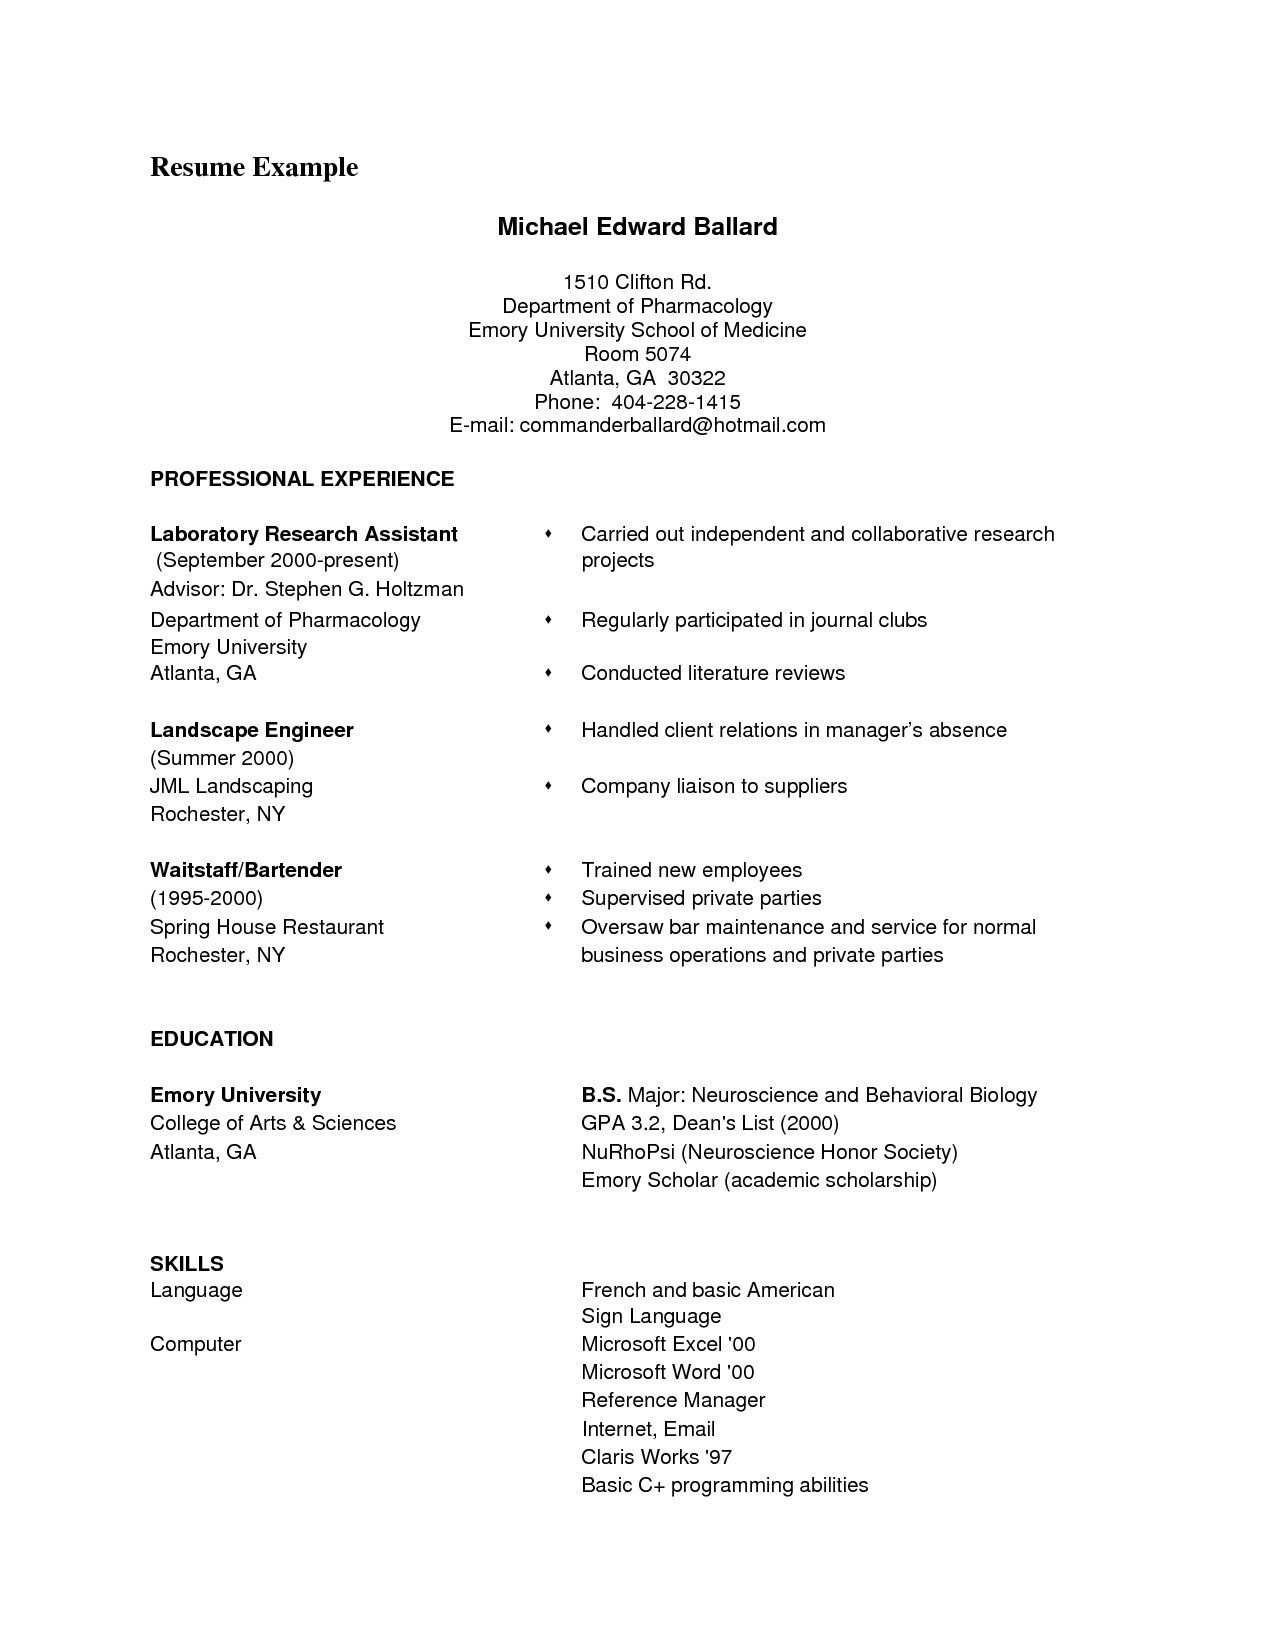 resume template powerpoint Collection-Classic Resume Templates ¢Ë†Å¡ Powerpoint Templates for Biology New Prophoto Templates 0d 5-b